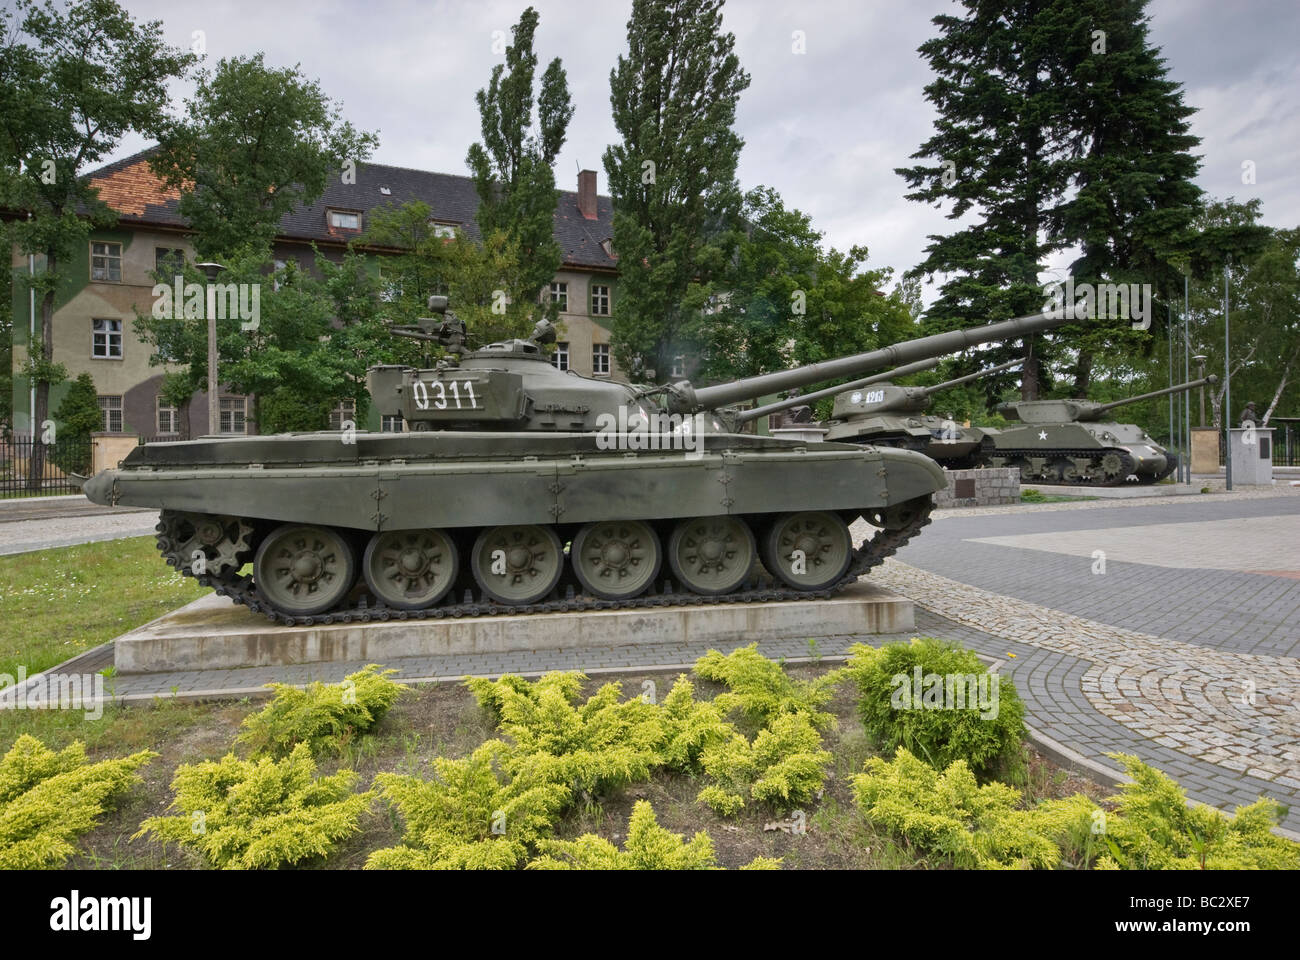 T 72 stock photos & t 72 stock images   alamy